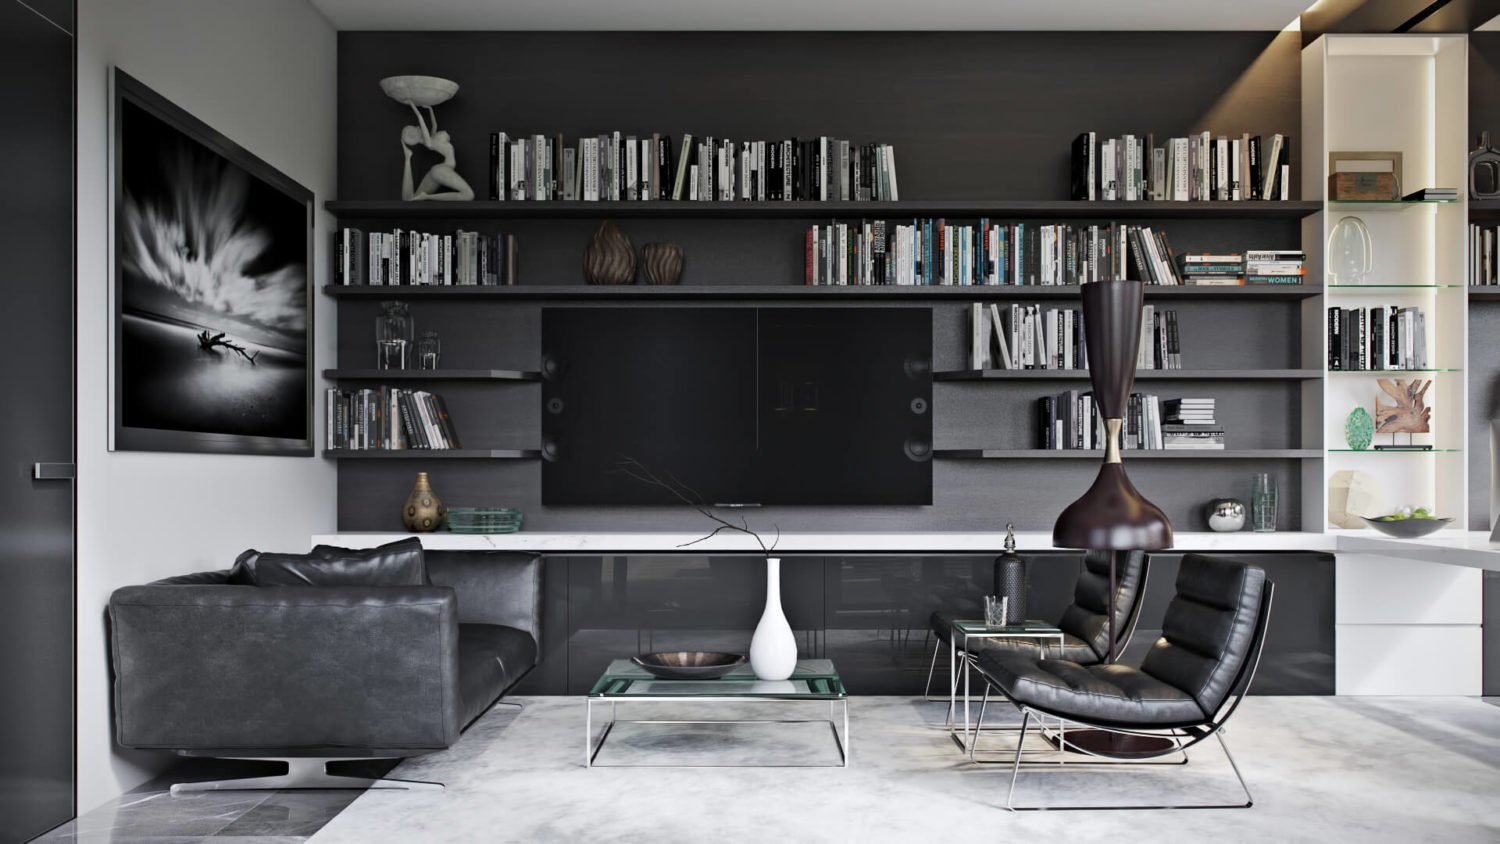 3D Visualization of a Big Home Office